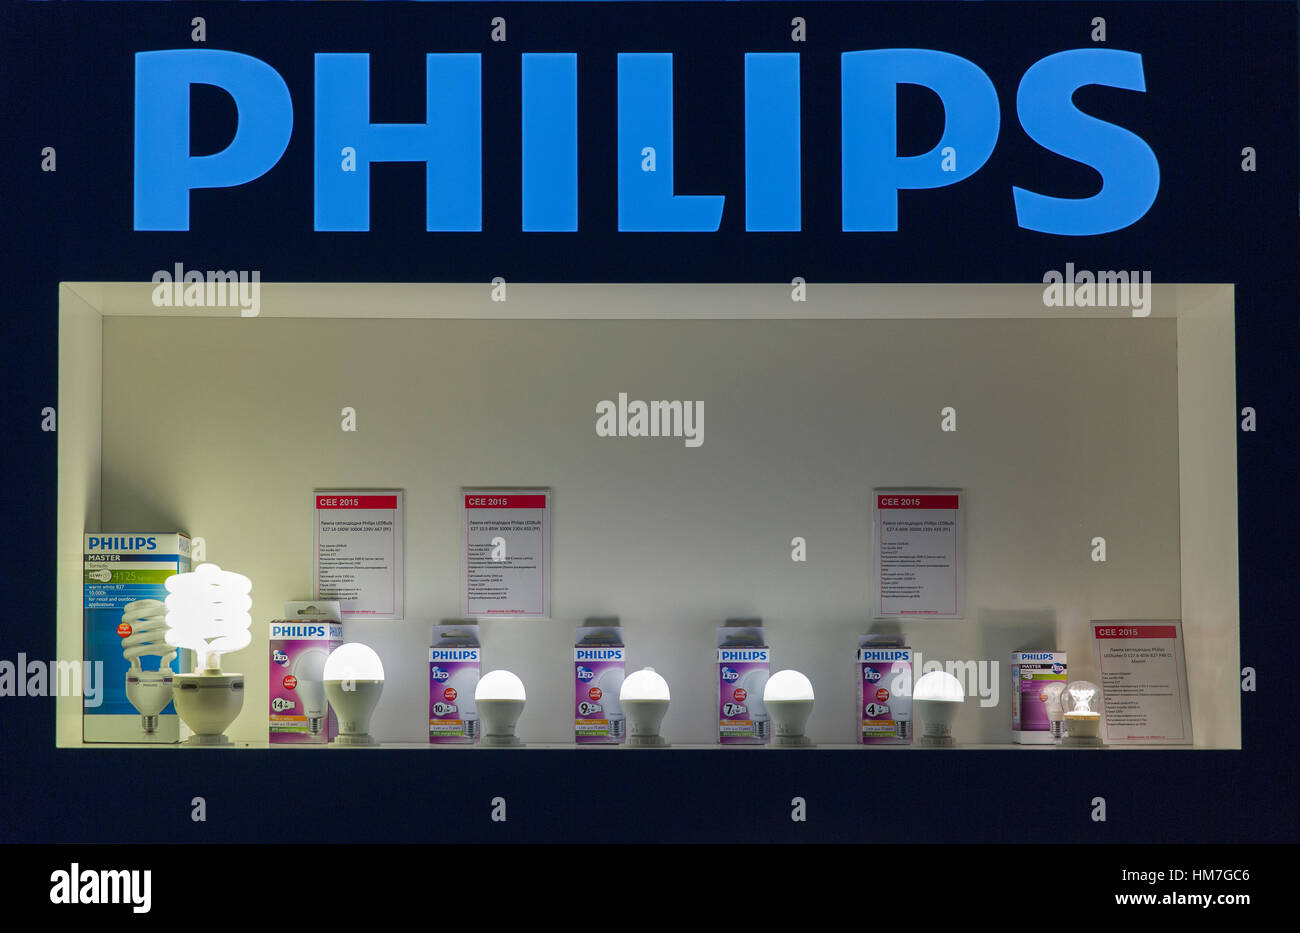 KIEV, UKRAINE - OCTOBER 11, 2015: Philips Lighting, Dutch technology company booth during CEE 2015, the largest - Stock Image